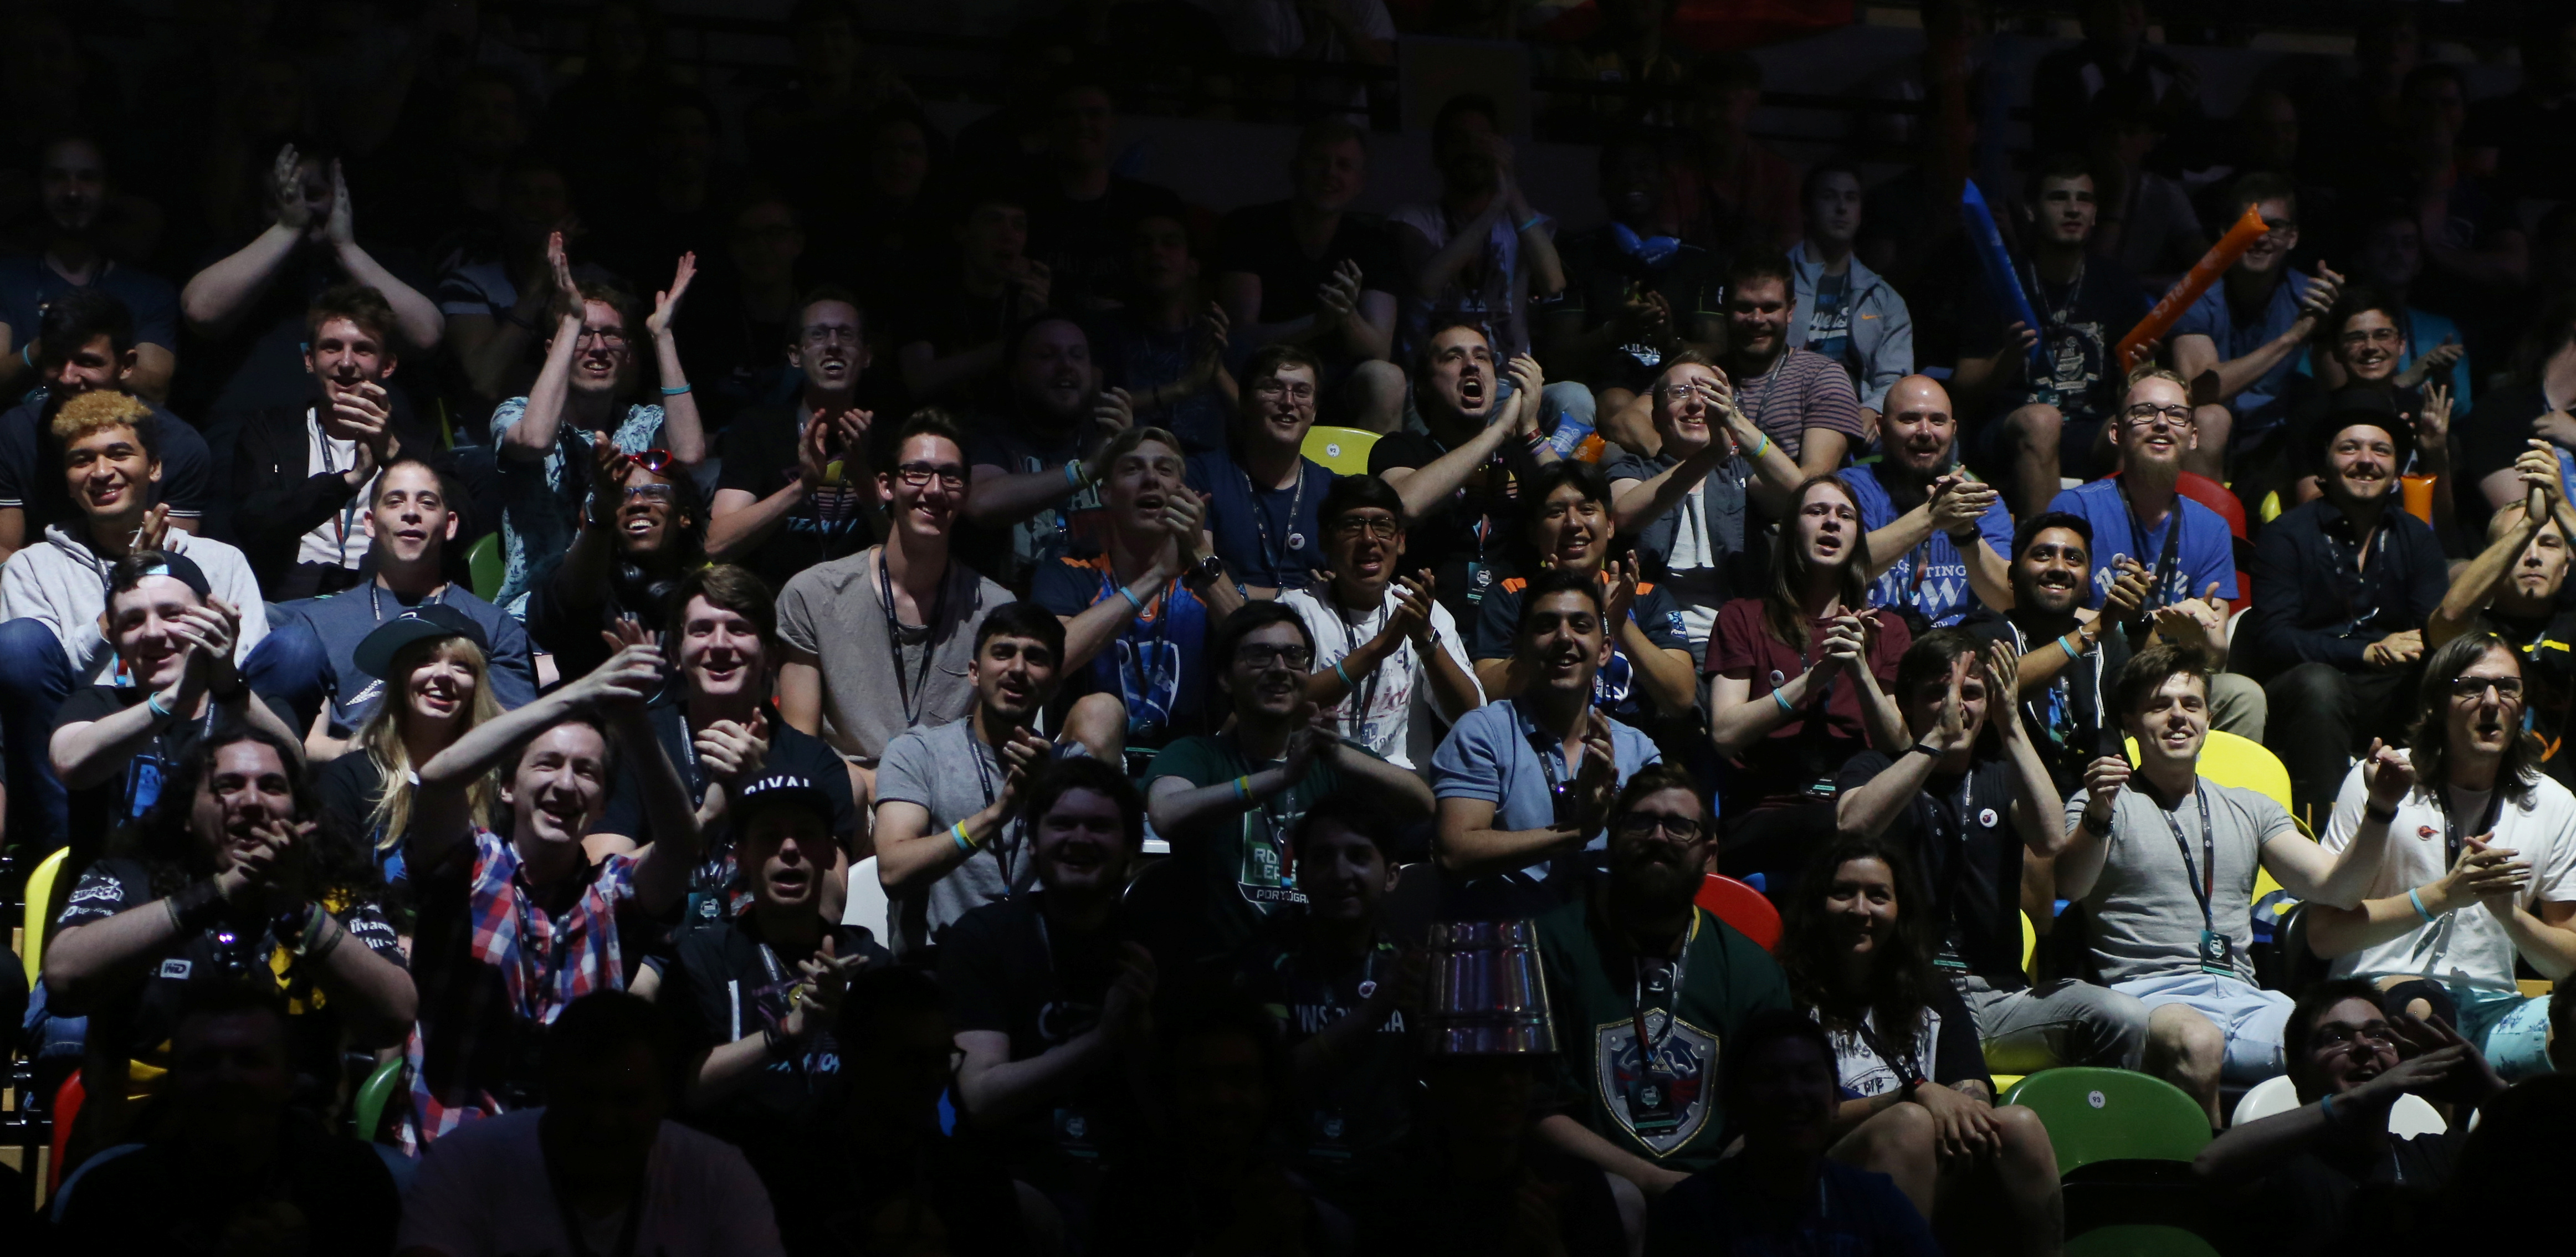 Fans cheer on day two of the Rocket League Championship Series Finals in London, Britain in June.